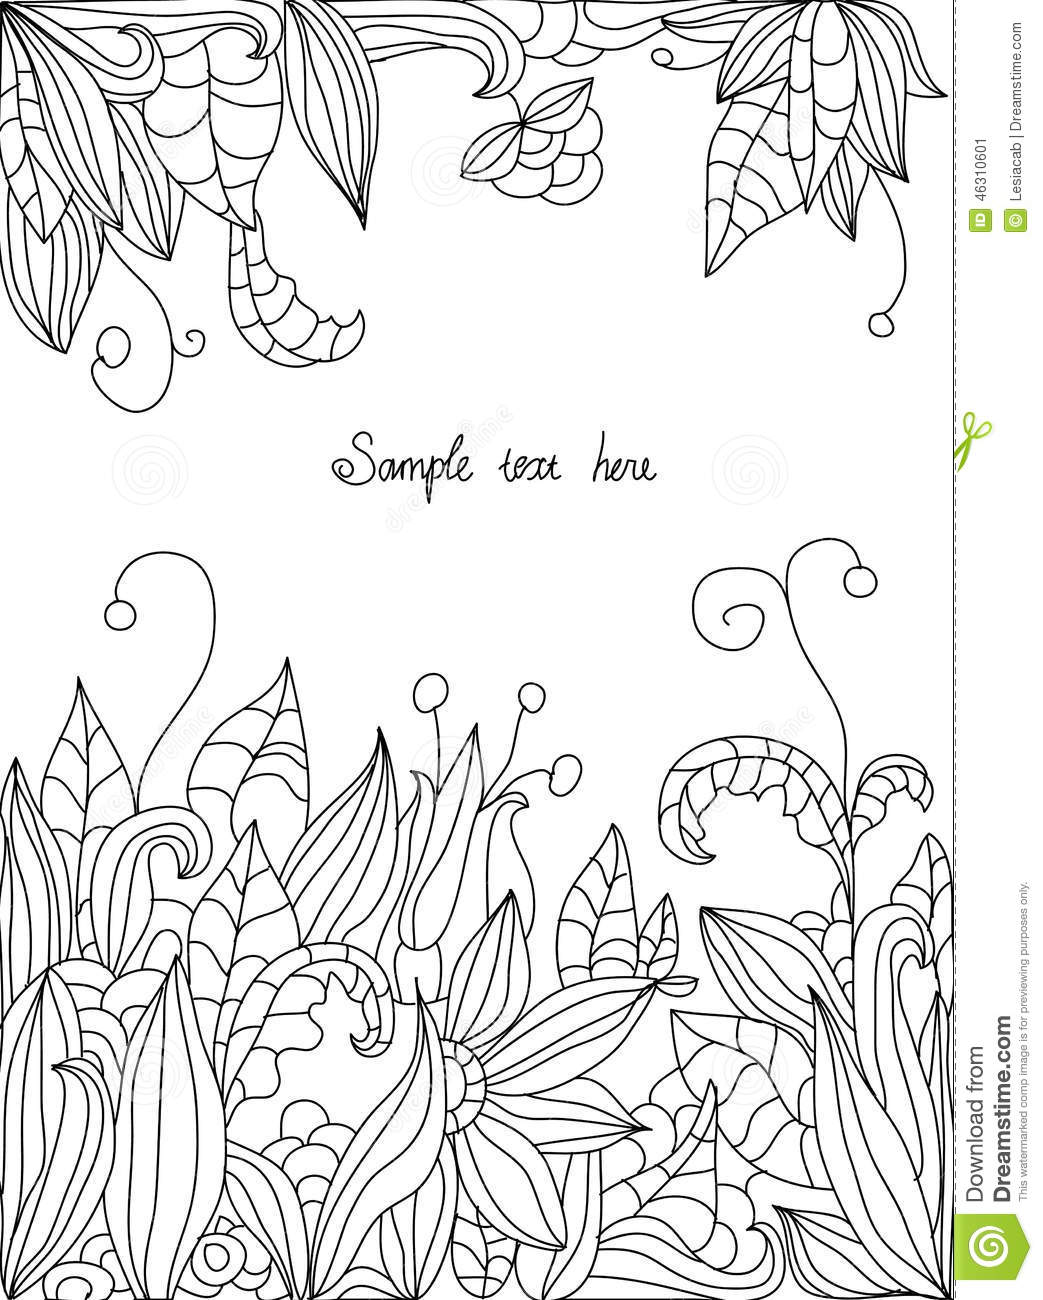 Flower Leaf Line Drawing : Drawings of flowers leaves stock vector illustration